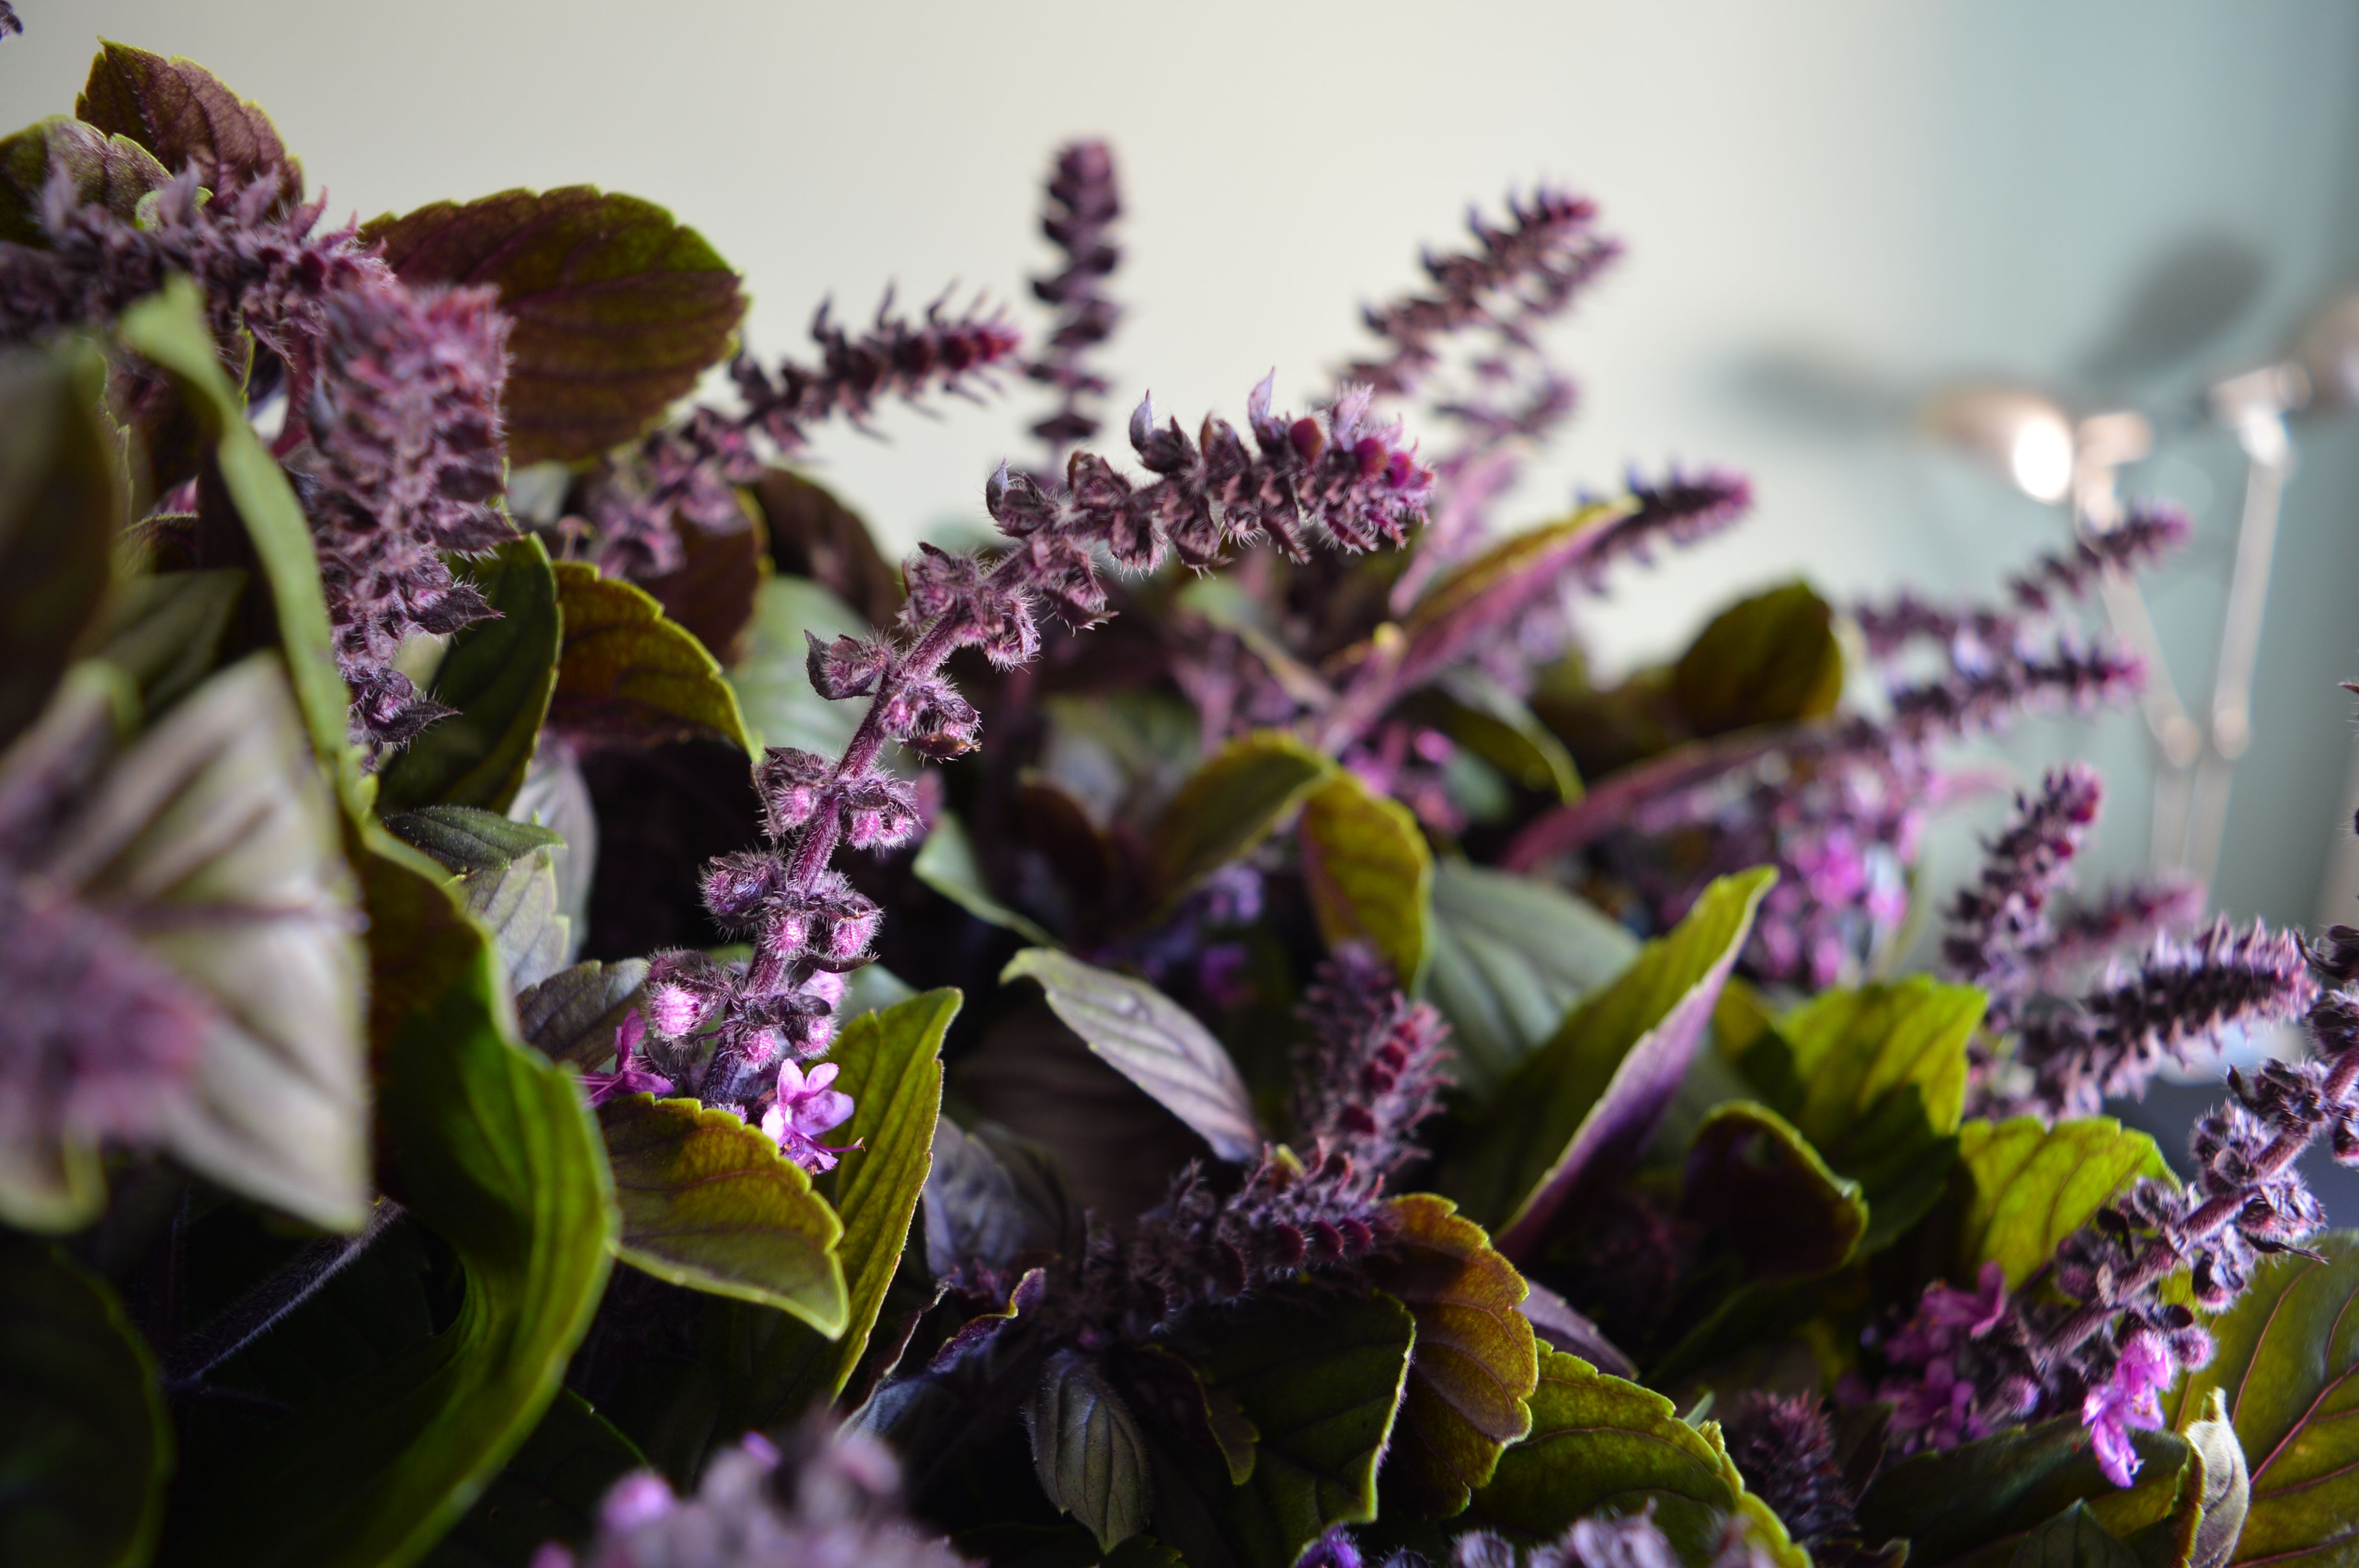 Purple Basil grown in the UK and supplied by Blooming British/ARGO flowers.